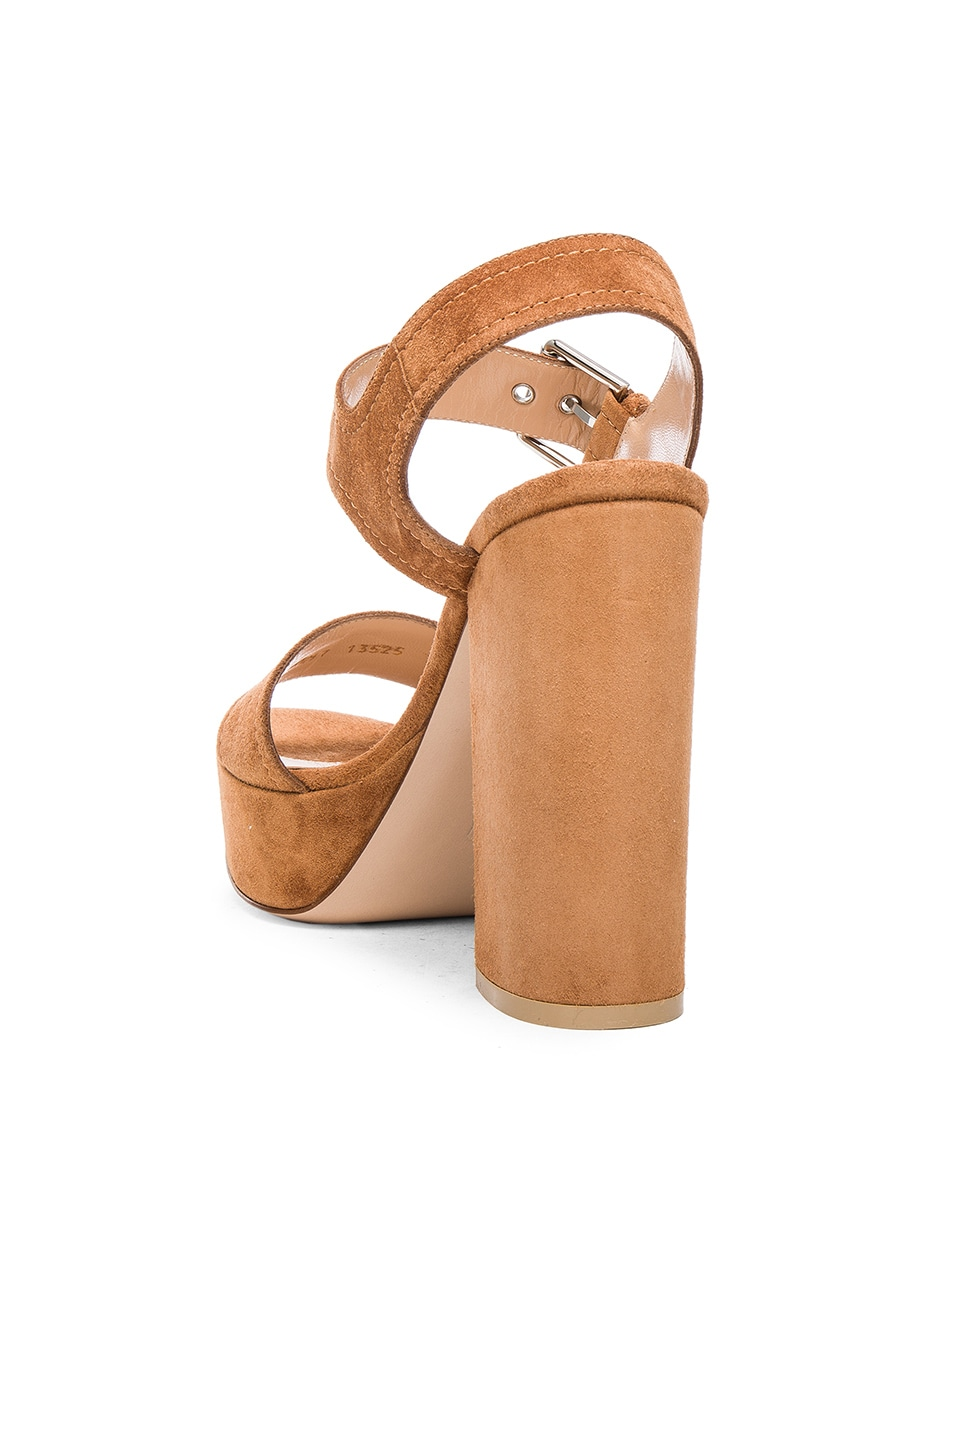 Image 3 of Gianvito Rossi Suede Gina Platform Sandals in Luggage